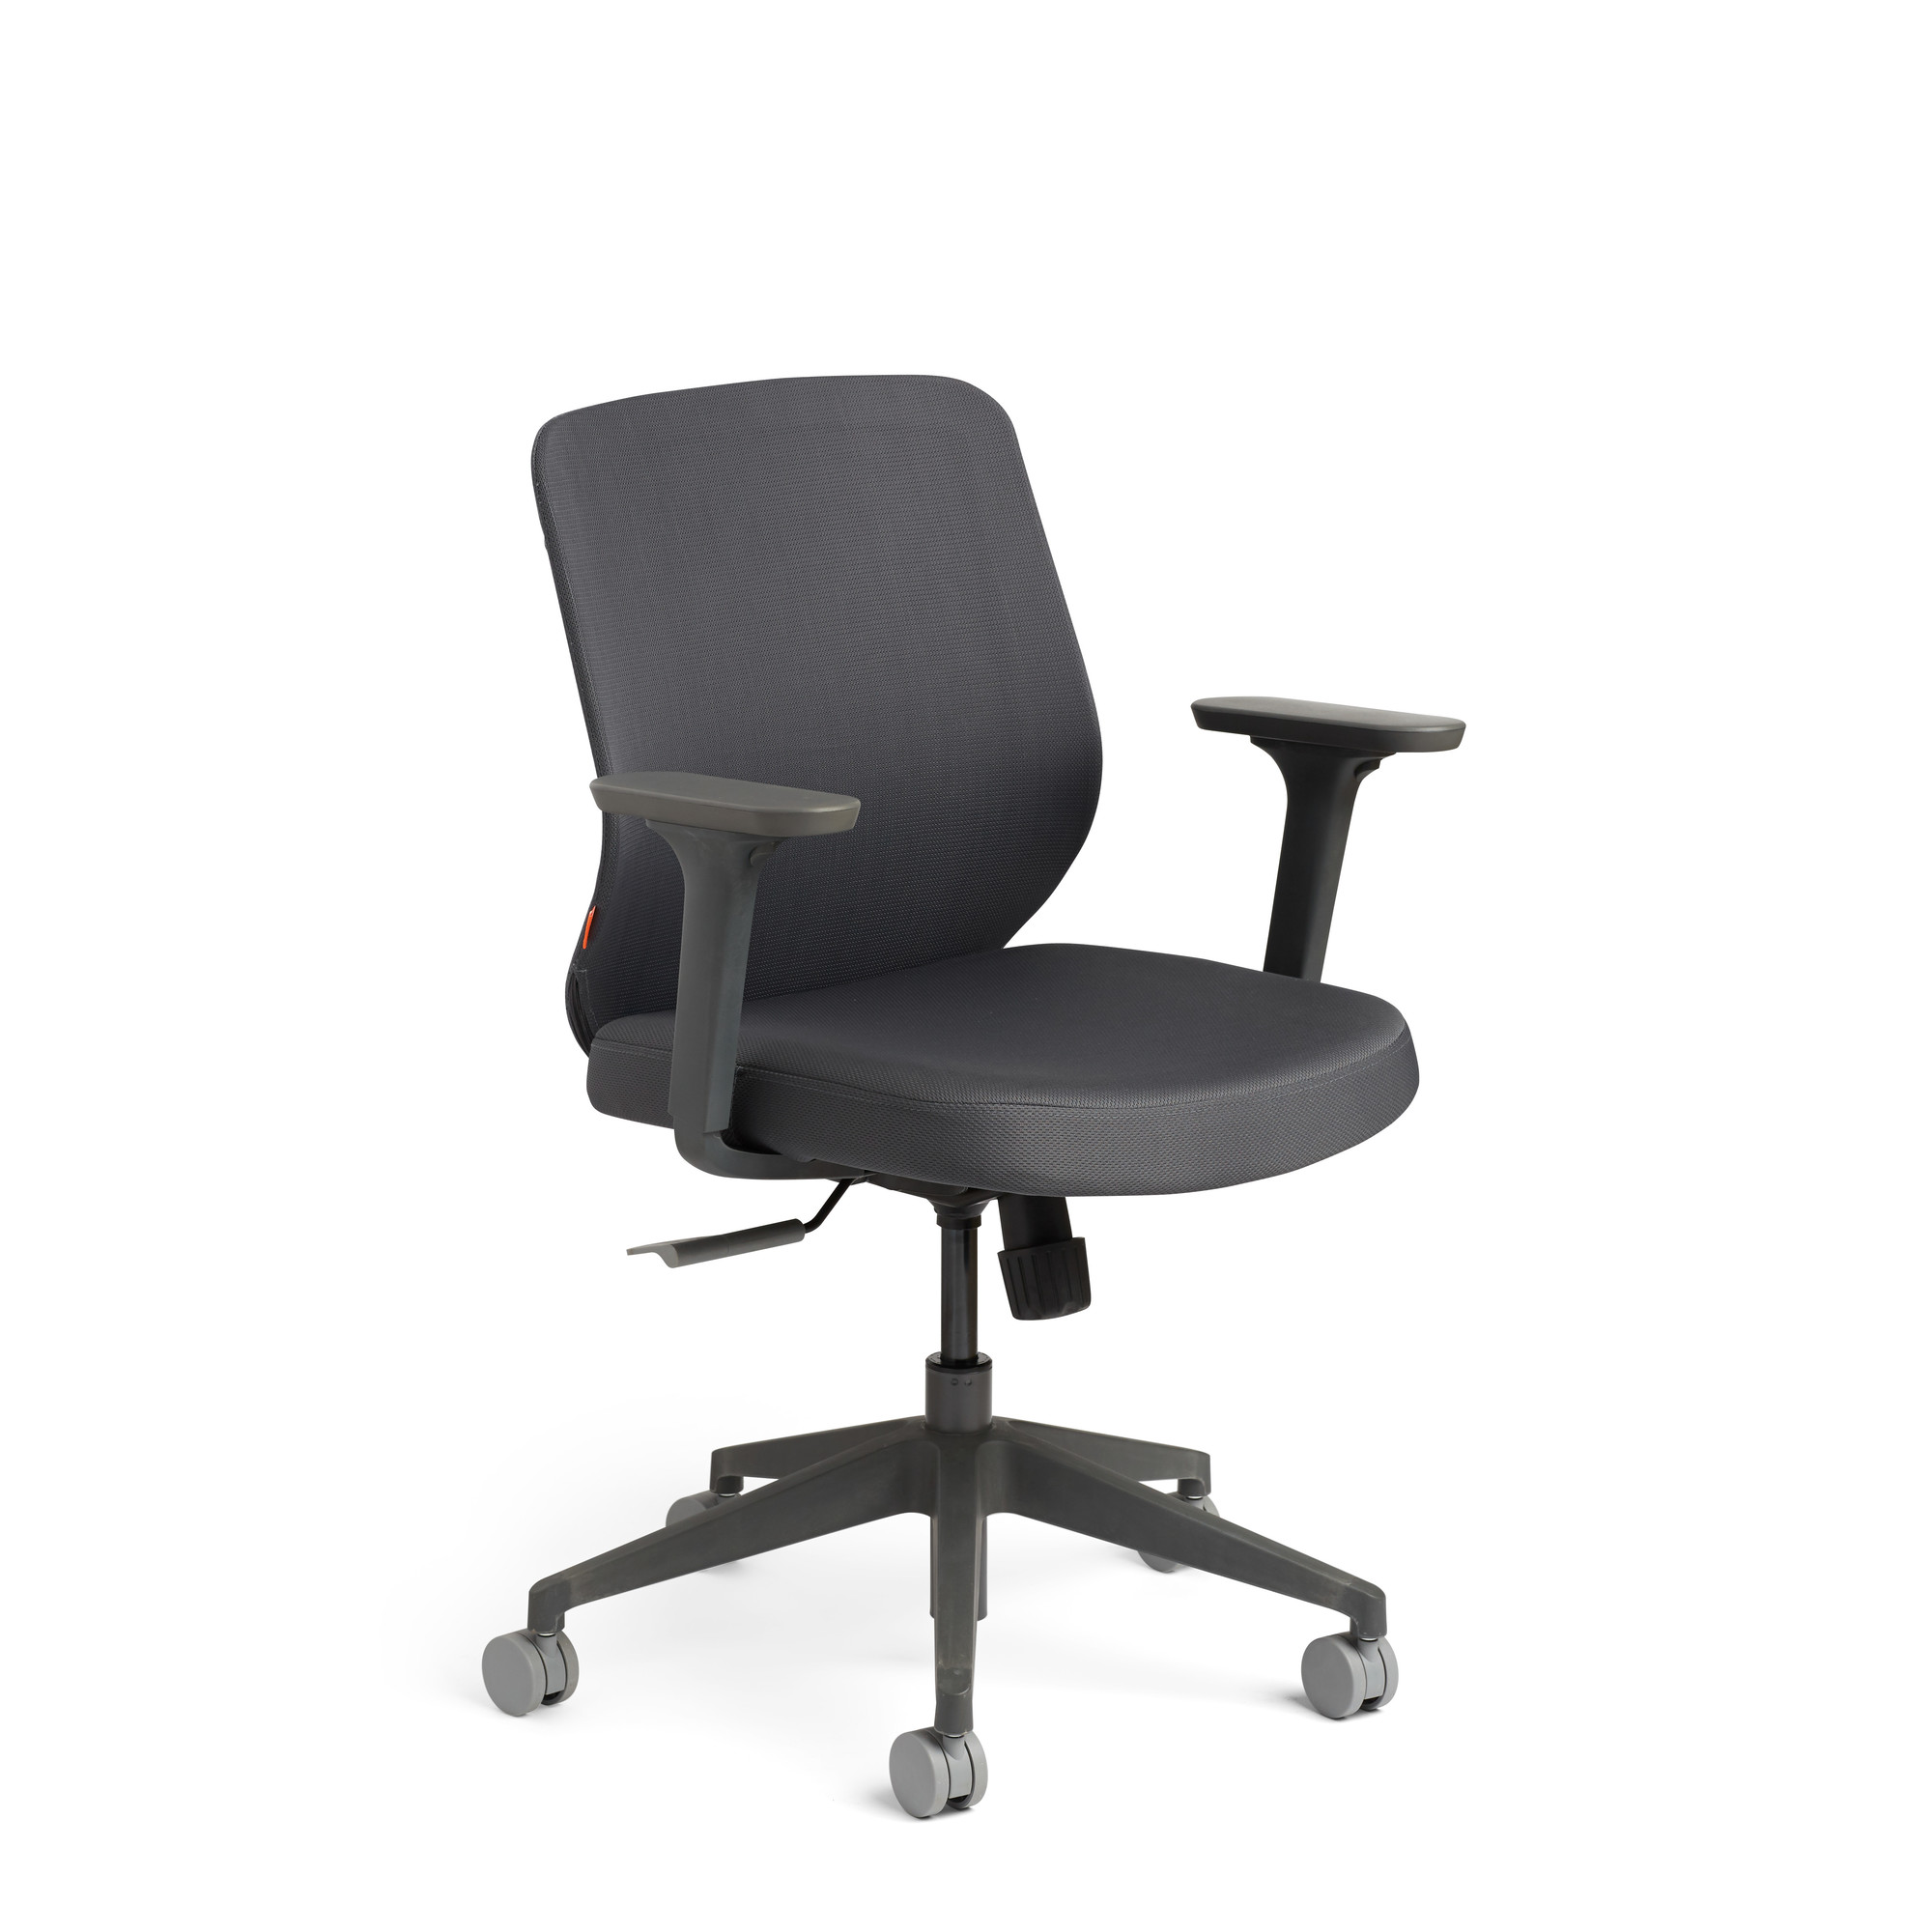 office chairs pictures ball dark gray max task chair mid back charcoal framedark grayhi office chairs computer desk home furniture poppin